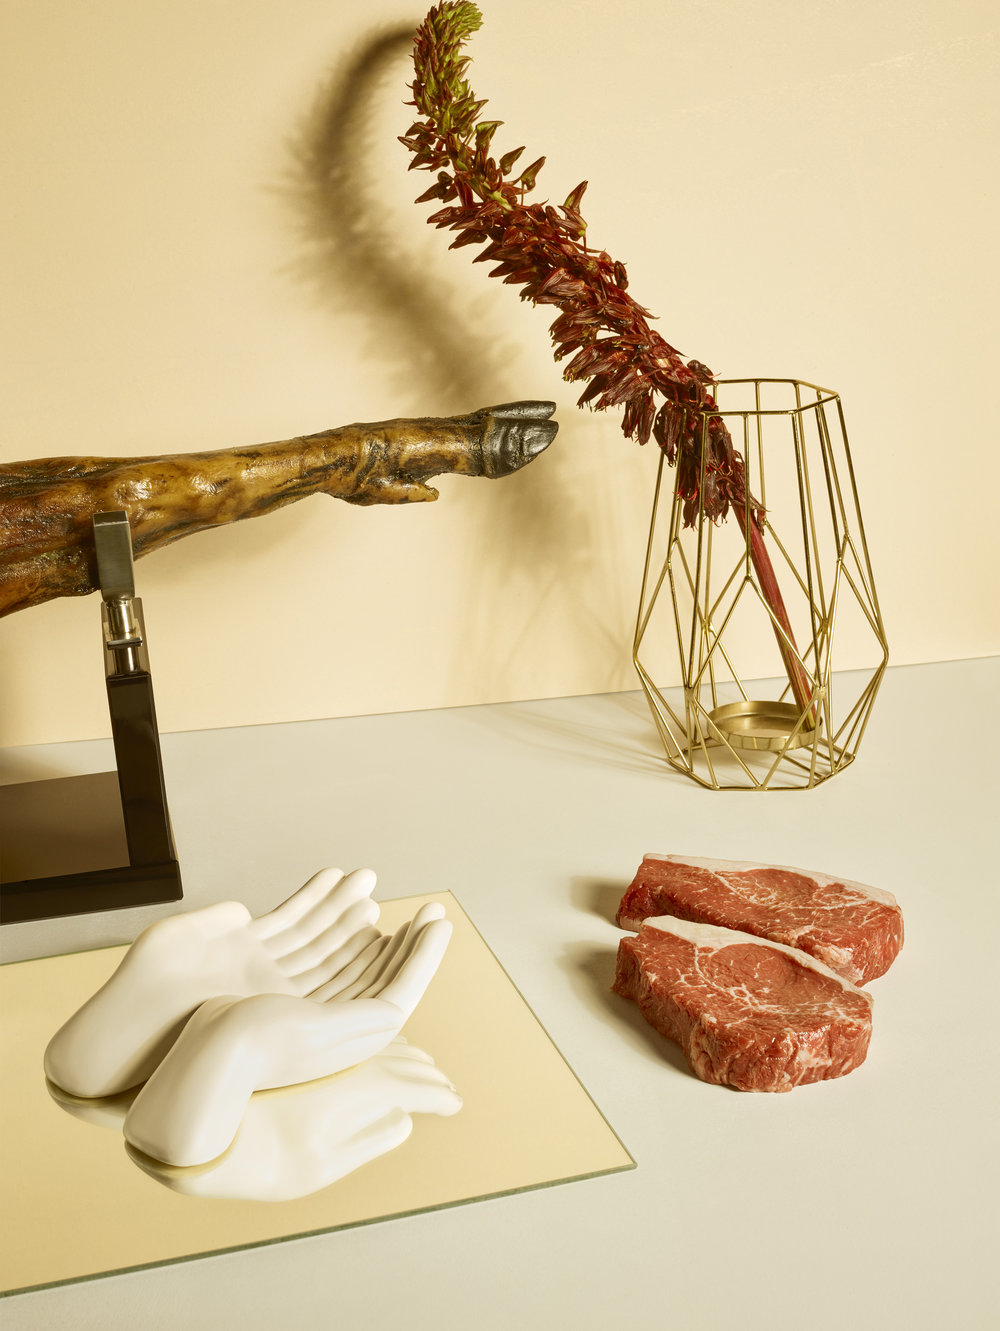 A CARNE e a ESCULTURA |  Meat and Sculpture